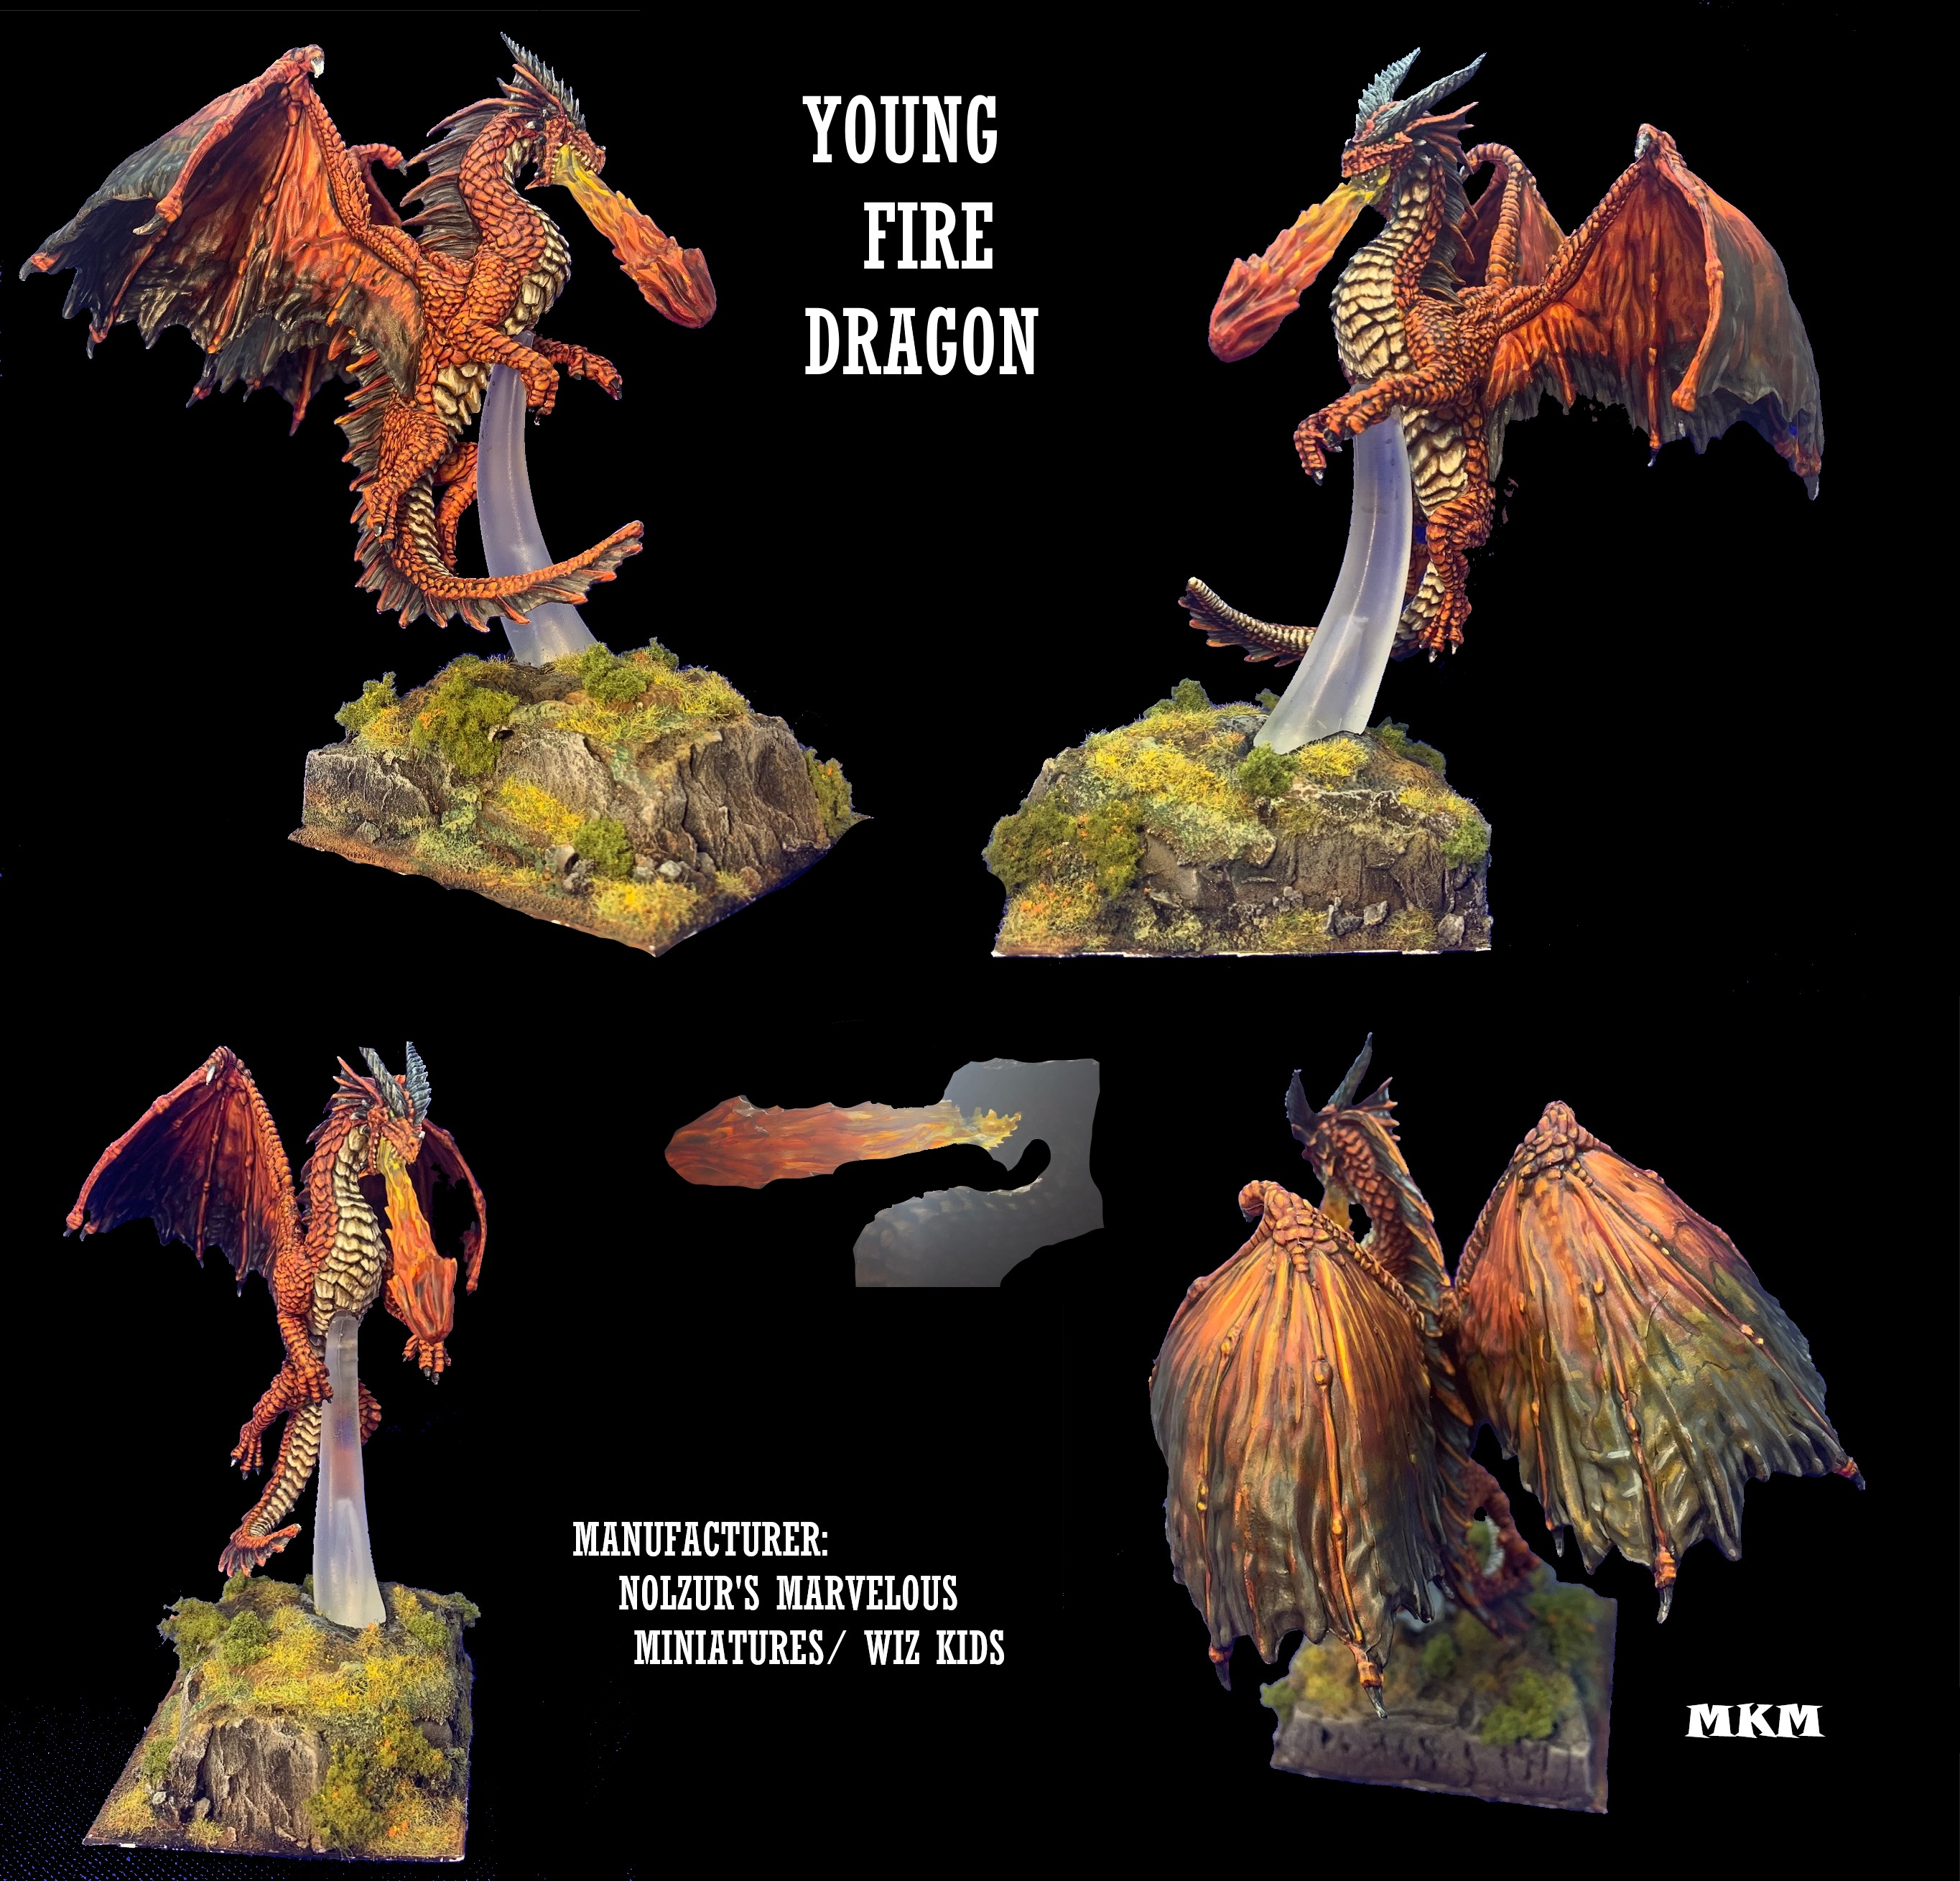 VIINTHURYOL, YOUNG FIRE DRAGON